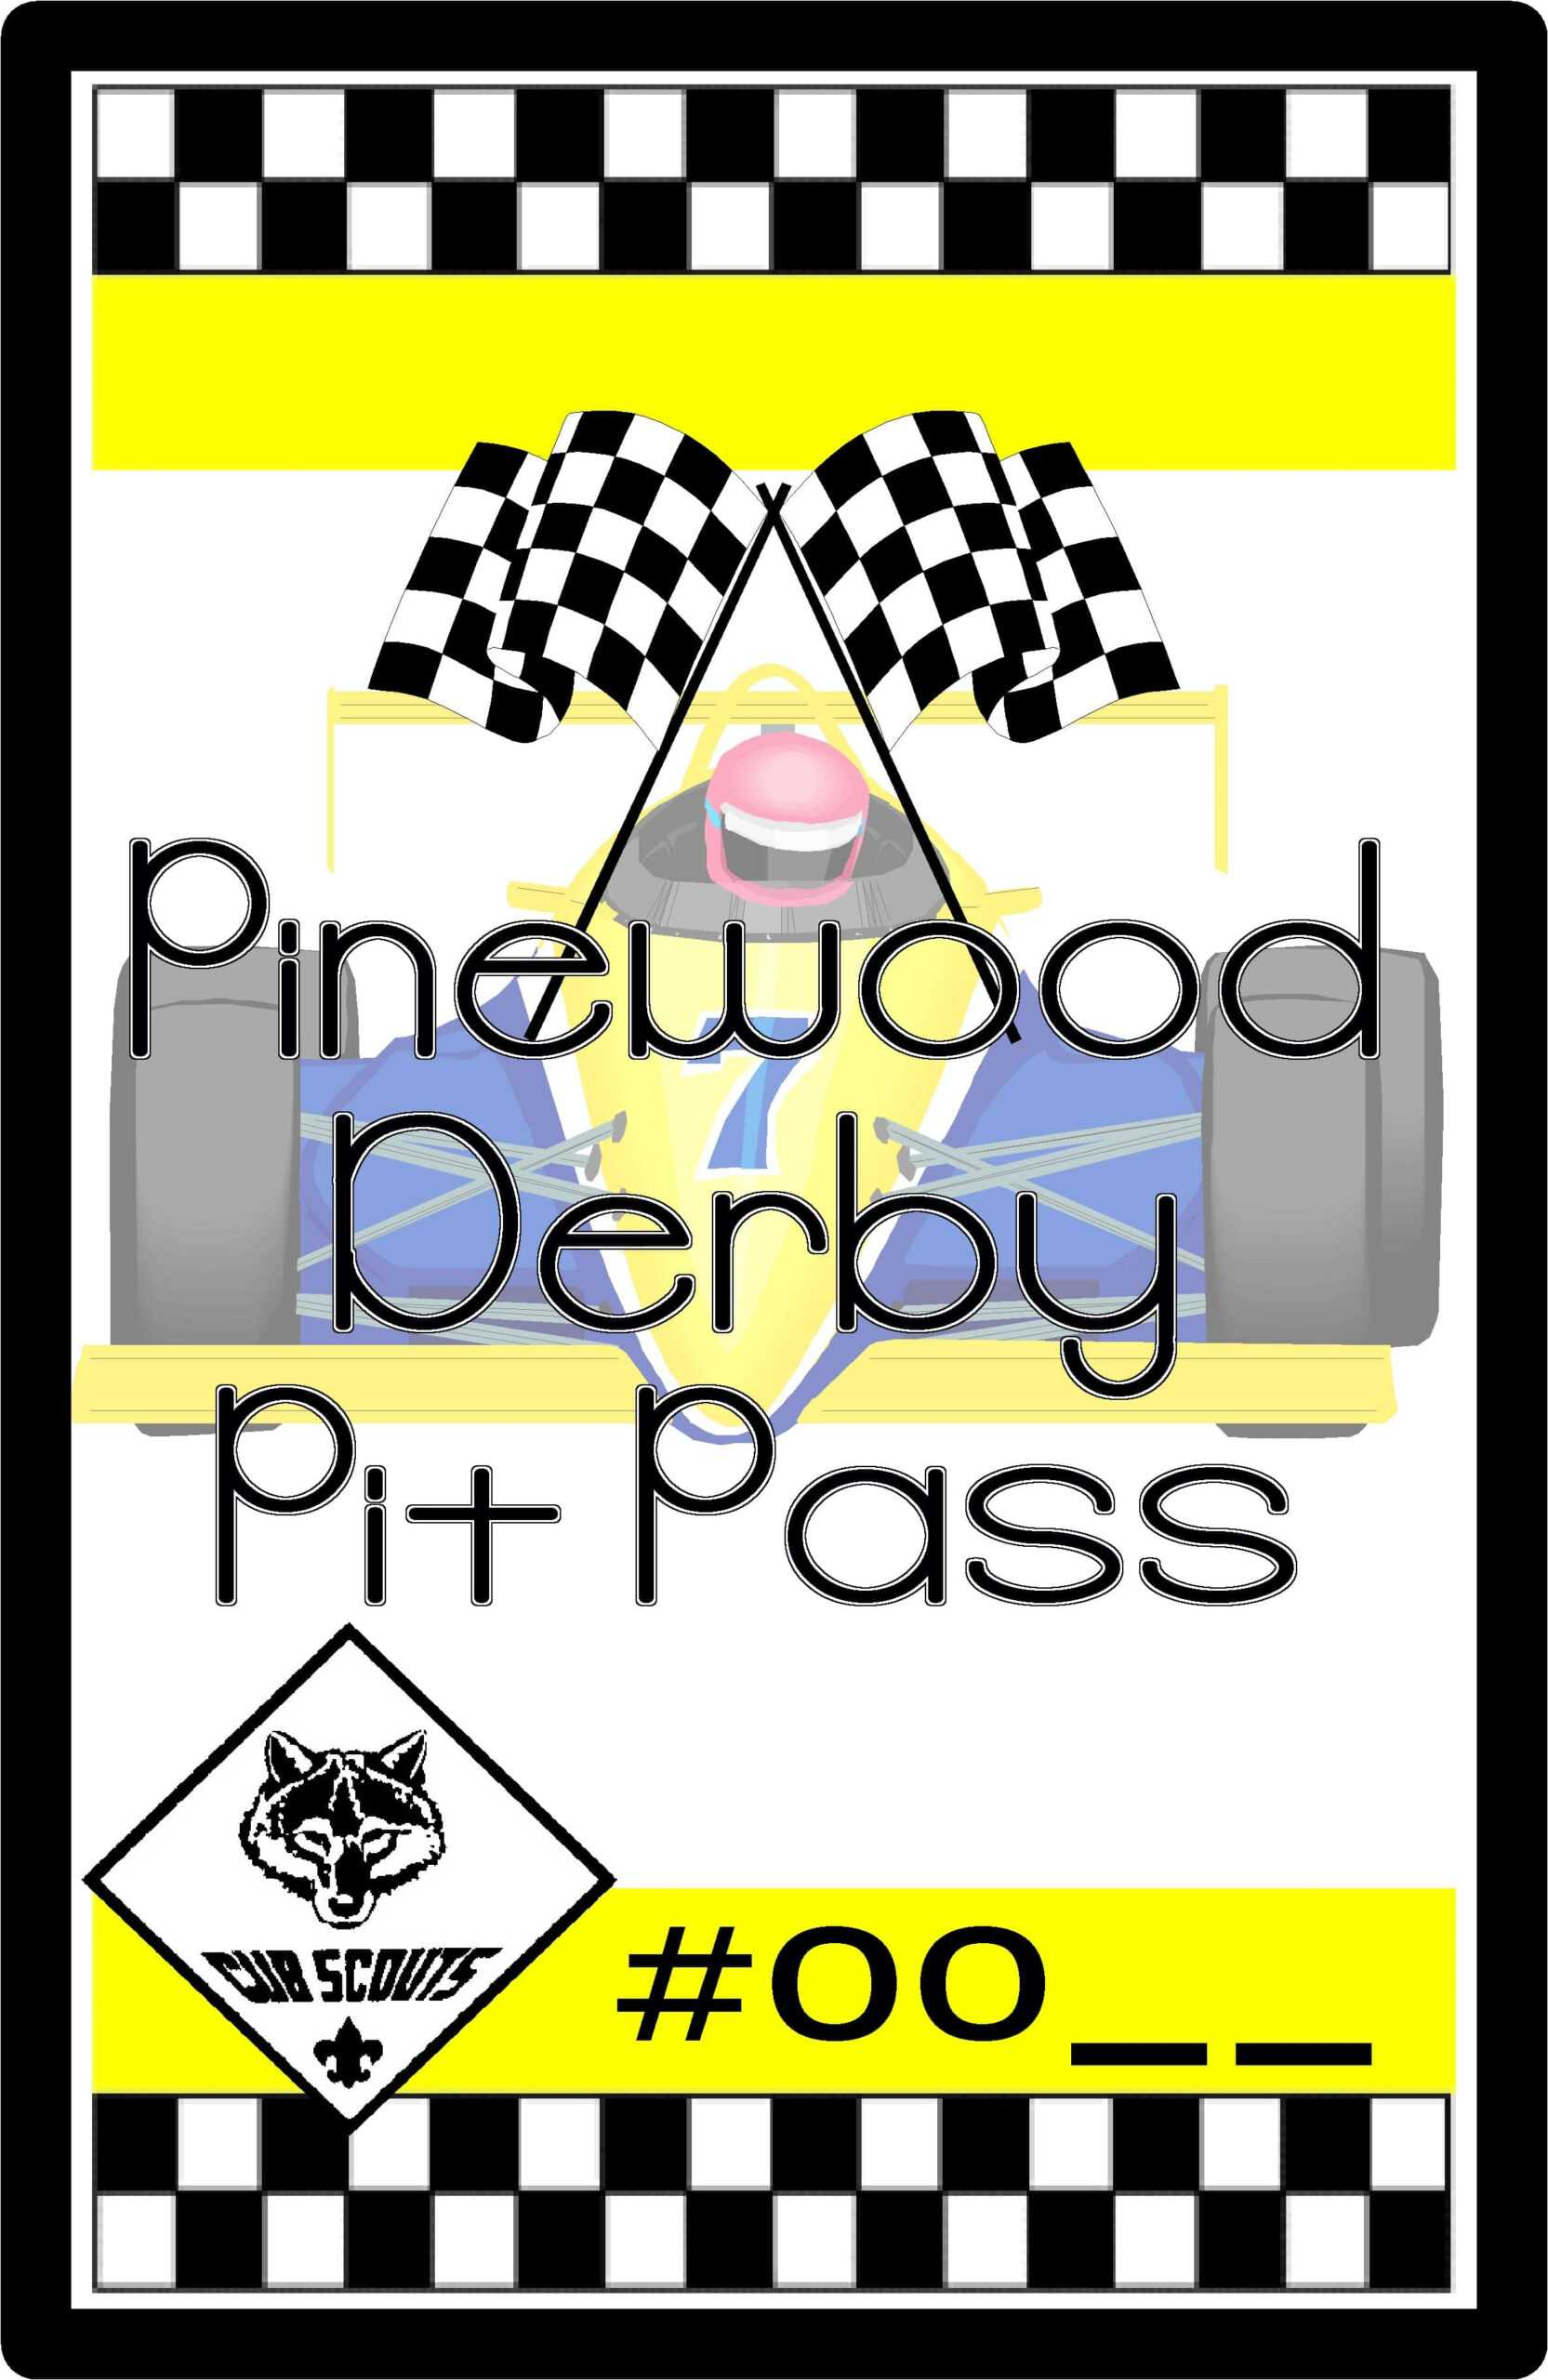 Cub Scout Pinewood Derby Pit Pass Pertaining To Pinewood Derby Certificate Template